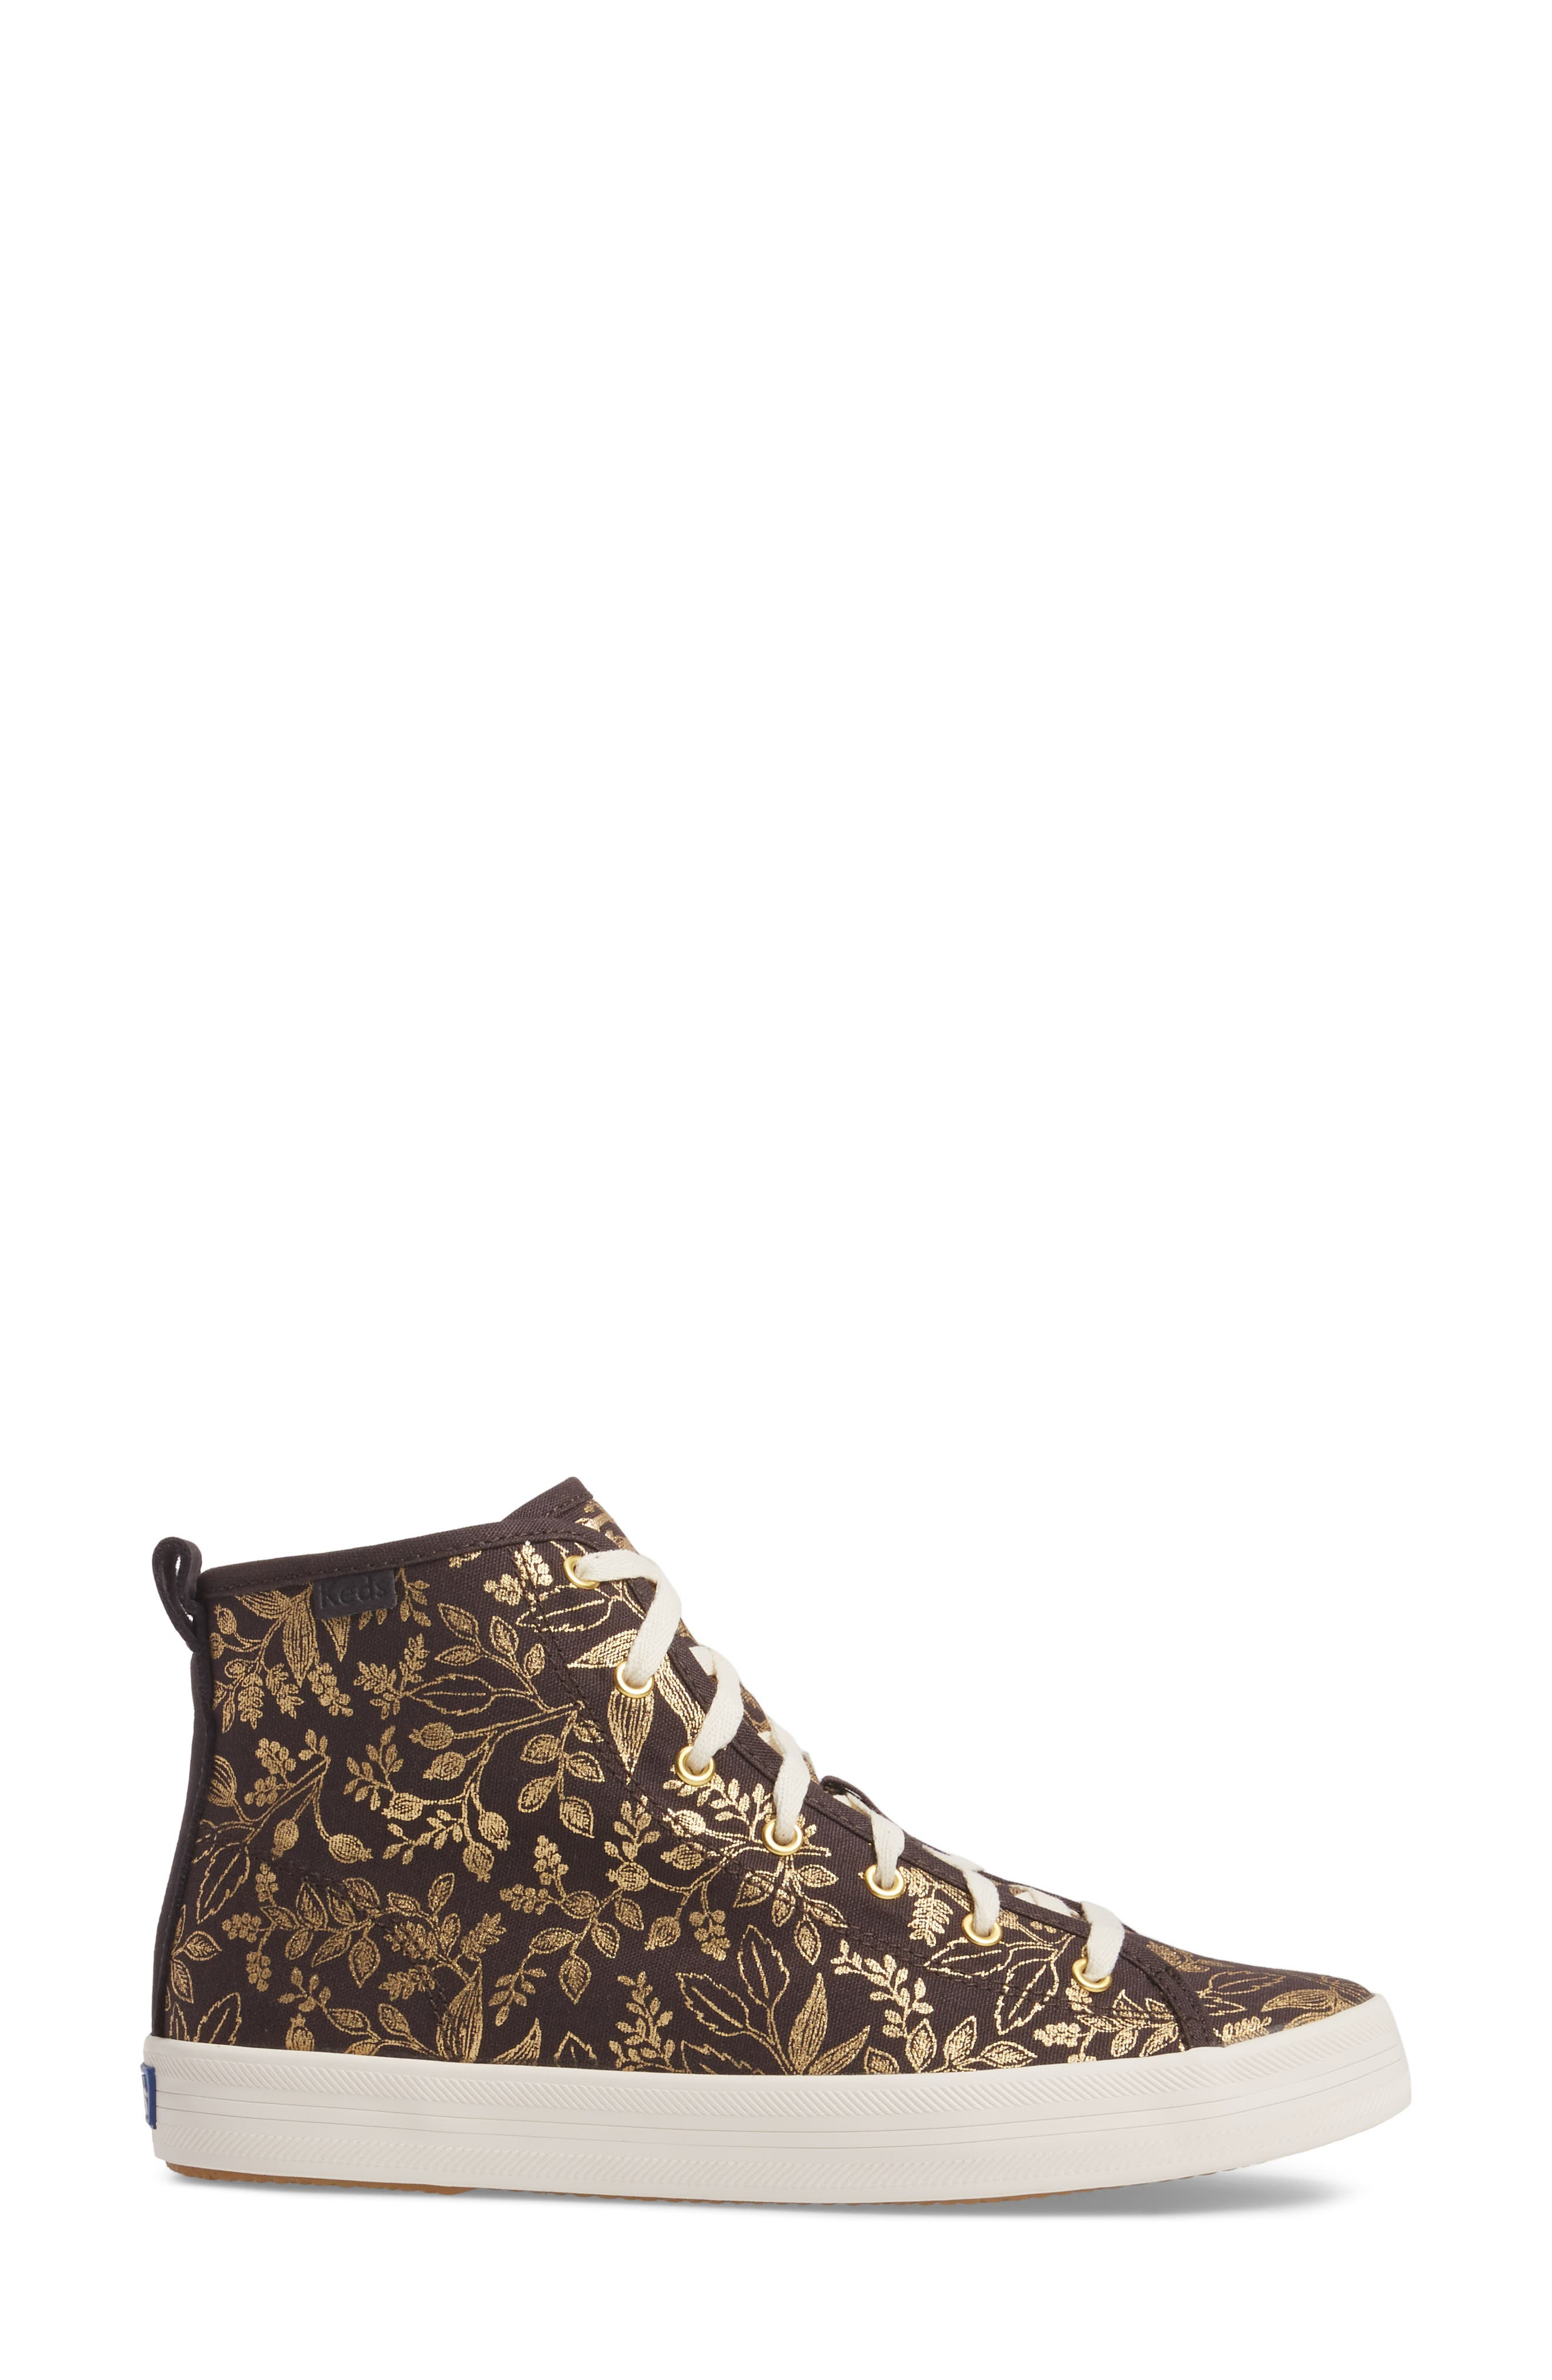 x Rifle Paper Co. Queen Anne High Top Sneaker,                             Alternate thumbnail 3, color,